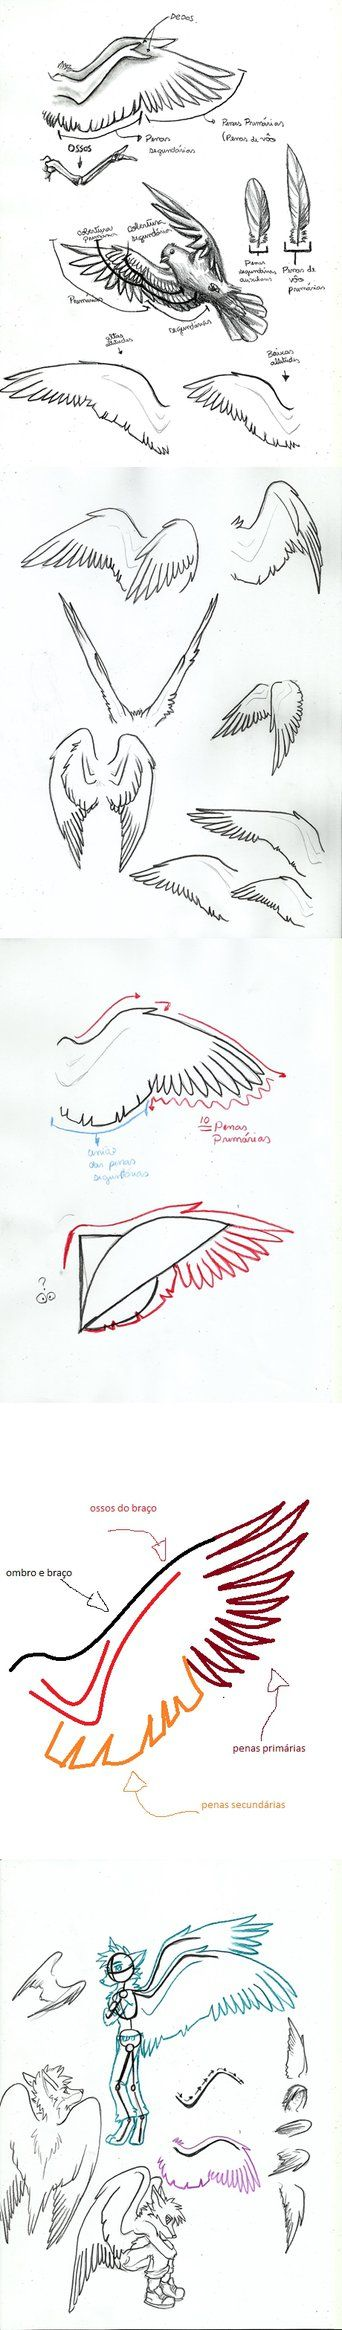 Hope this helps you gain a better understanding of wings.